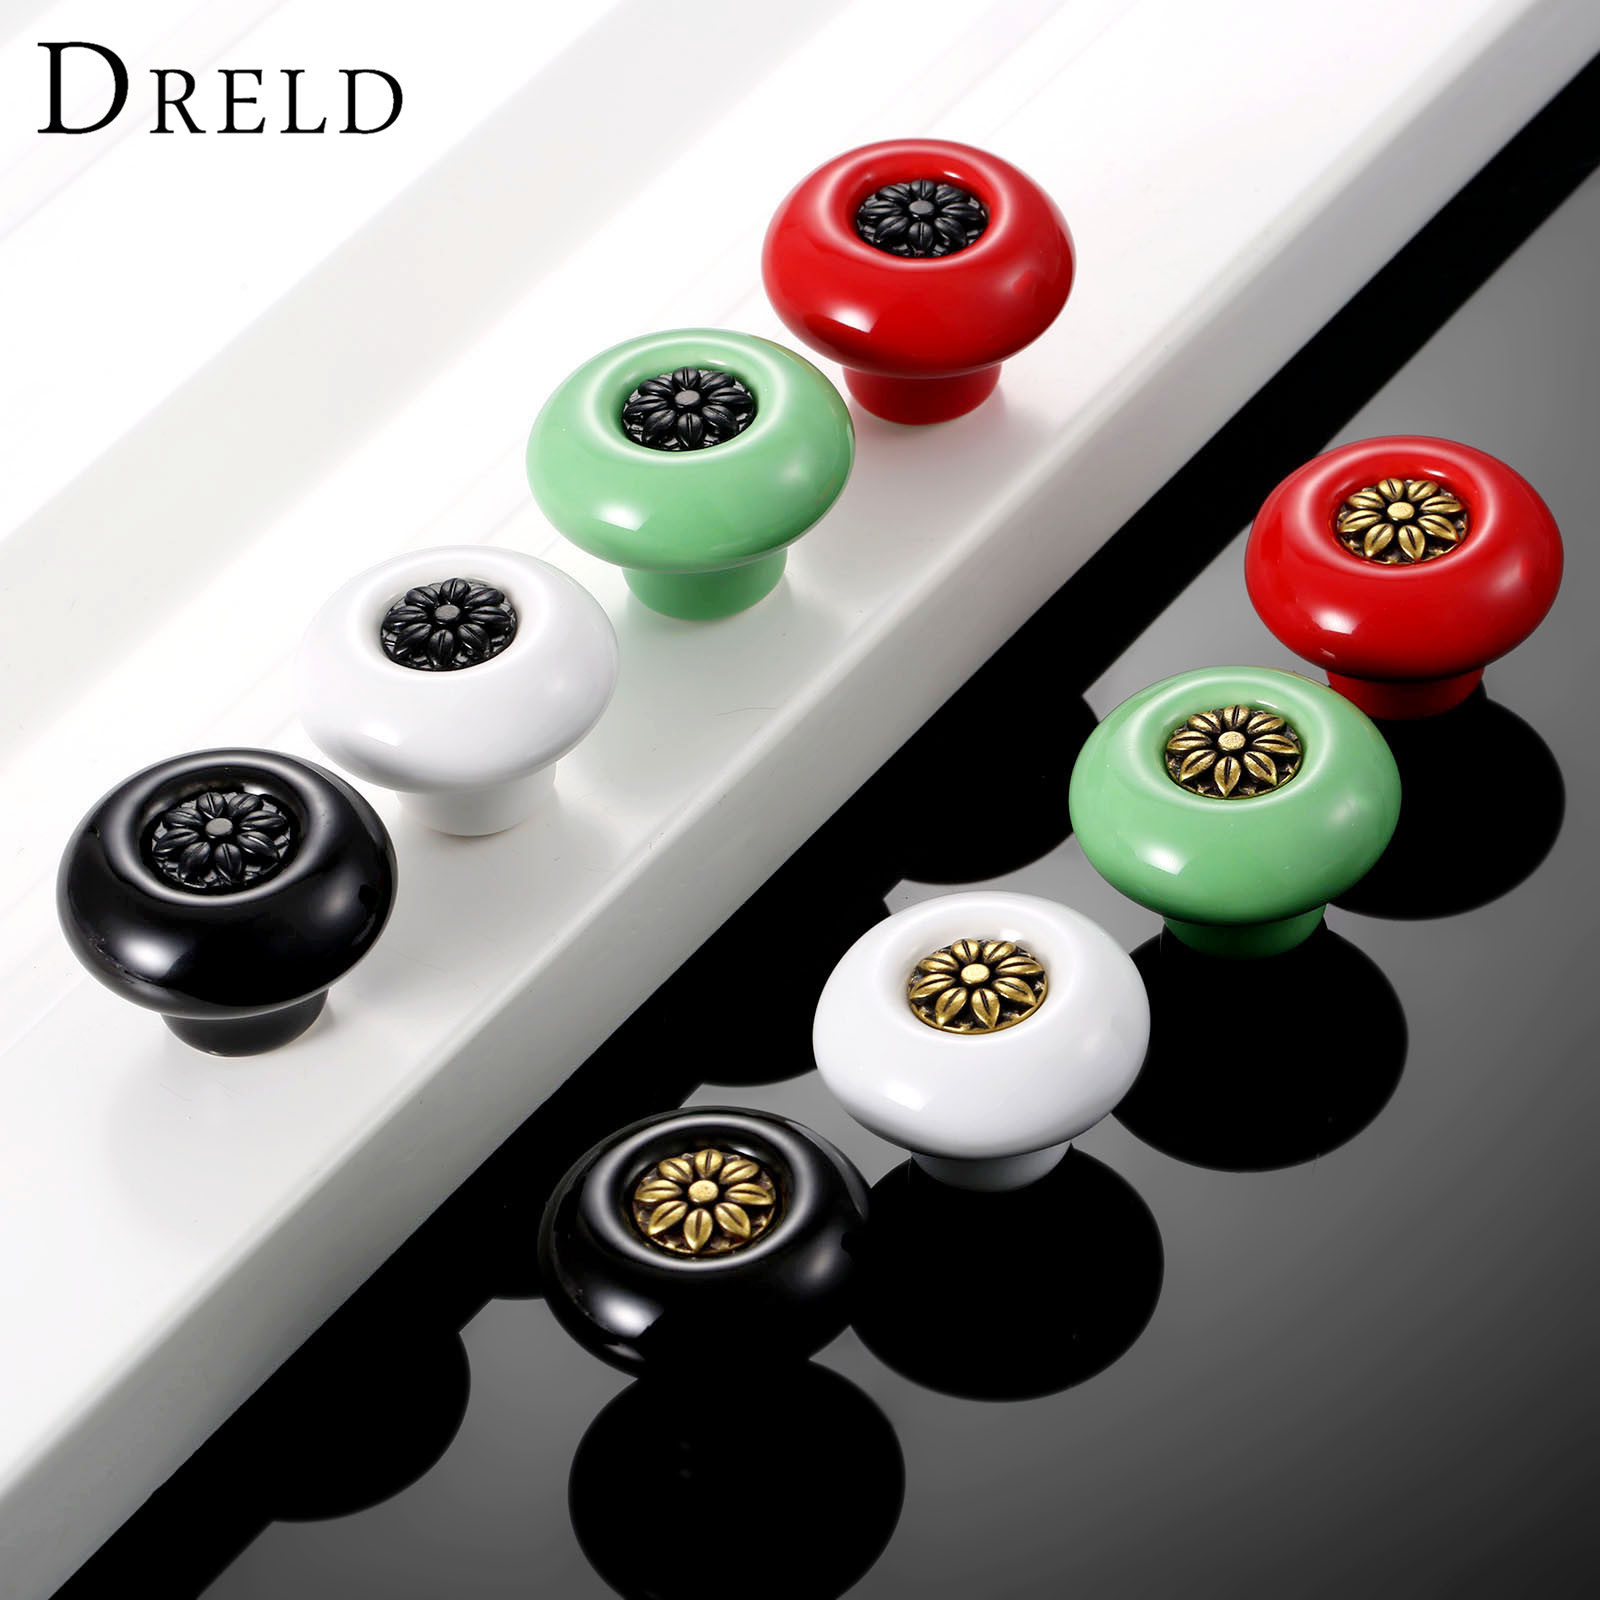 DRELD Vintage Furniture Handle Ceramic Door Knob Cupboard Drawer Cabinet Knobs and Handle kitchen Pull Handle Furniture Hardware retro vintage kitchen drawer cabinet door flower handle furniture knobs hardware cupboard antique metal shell pull handles 1pc